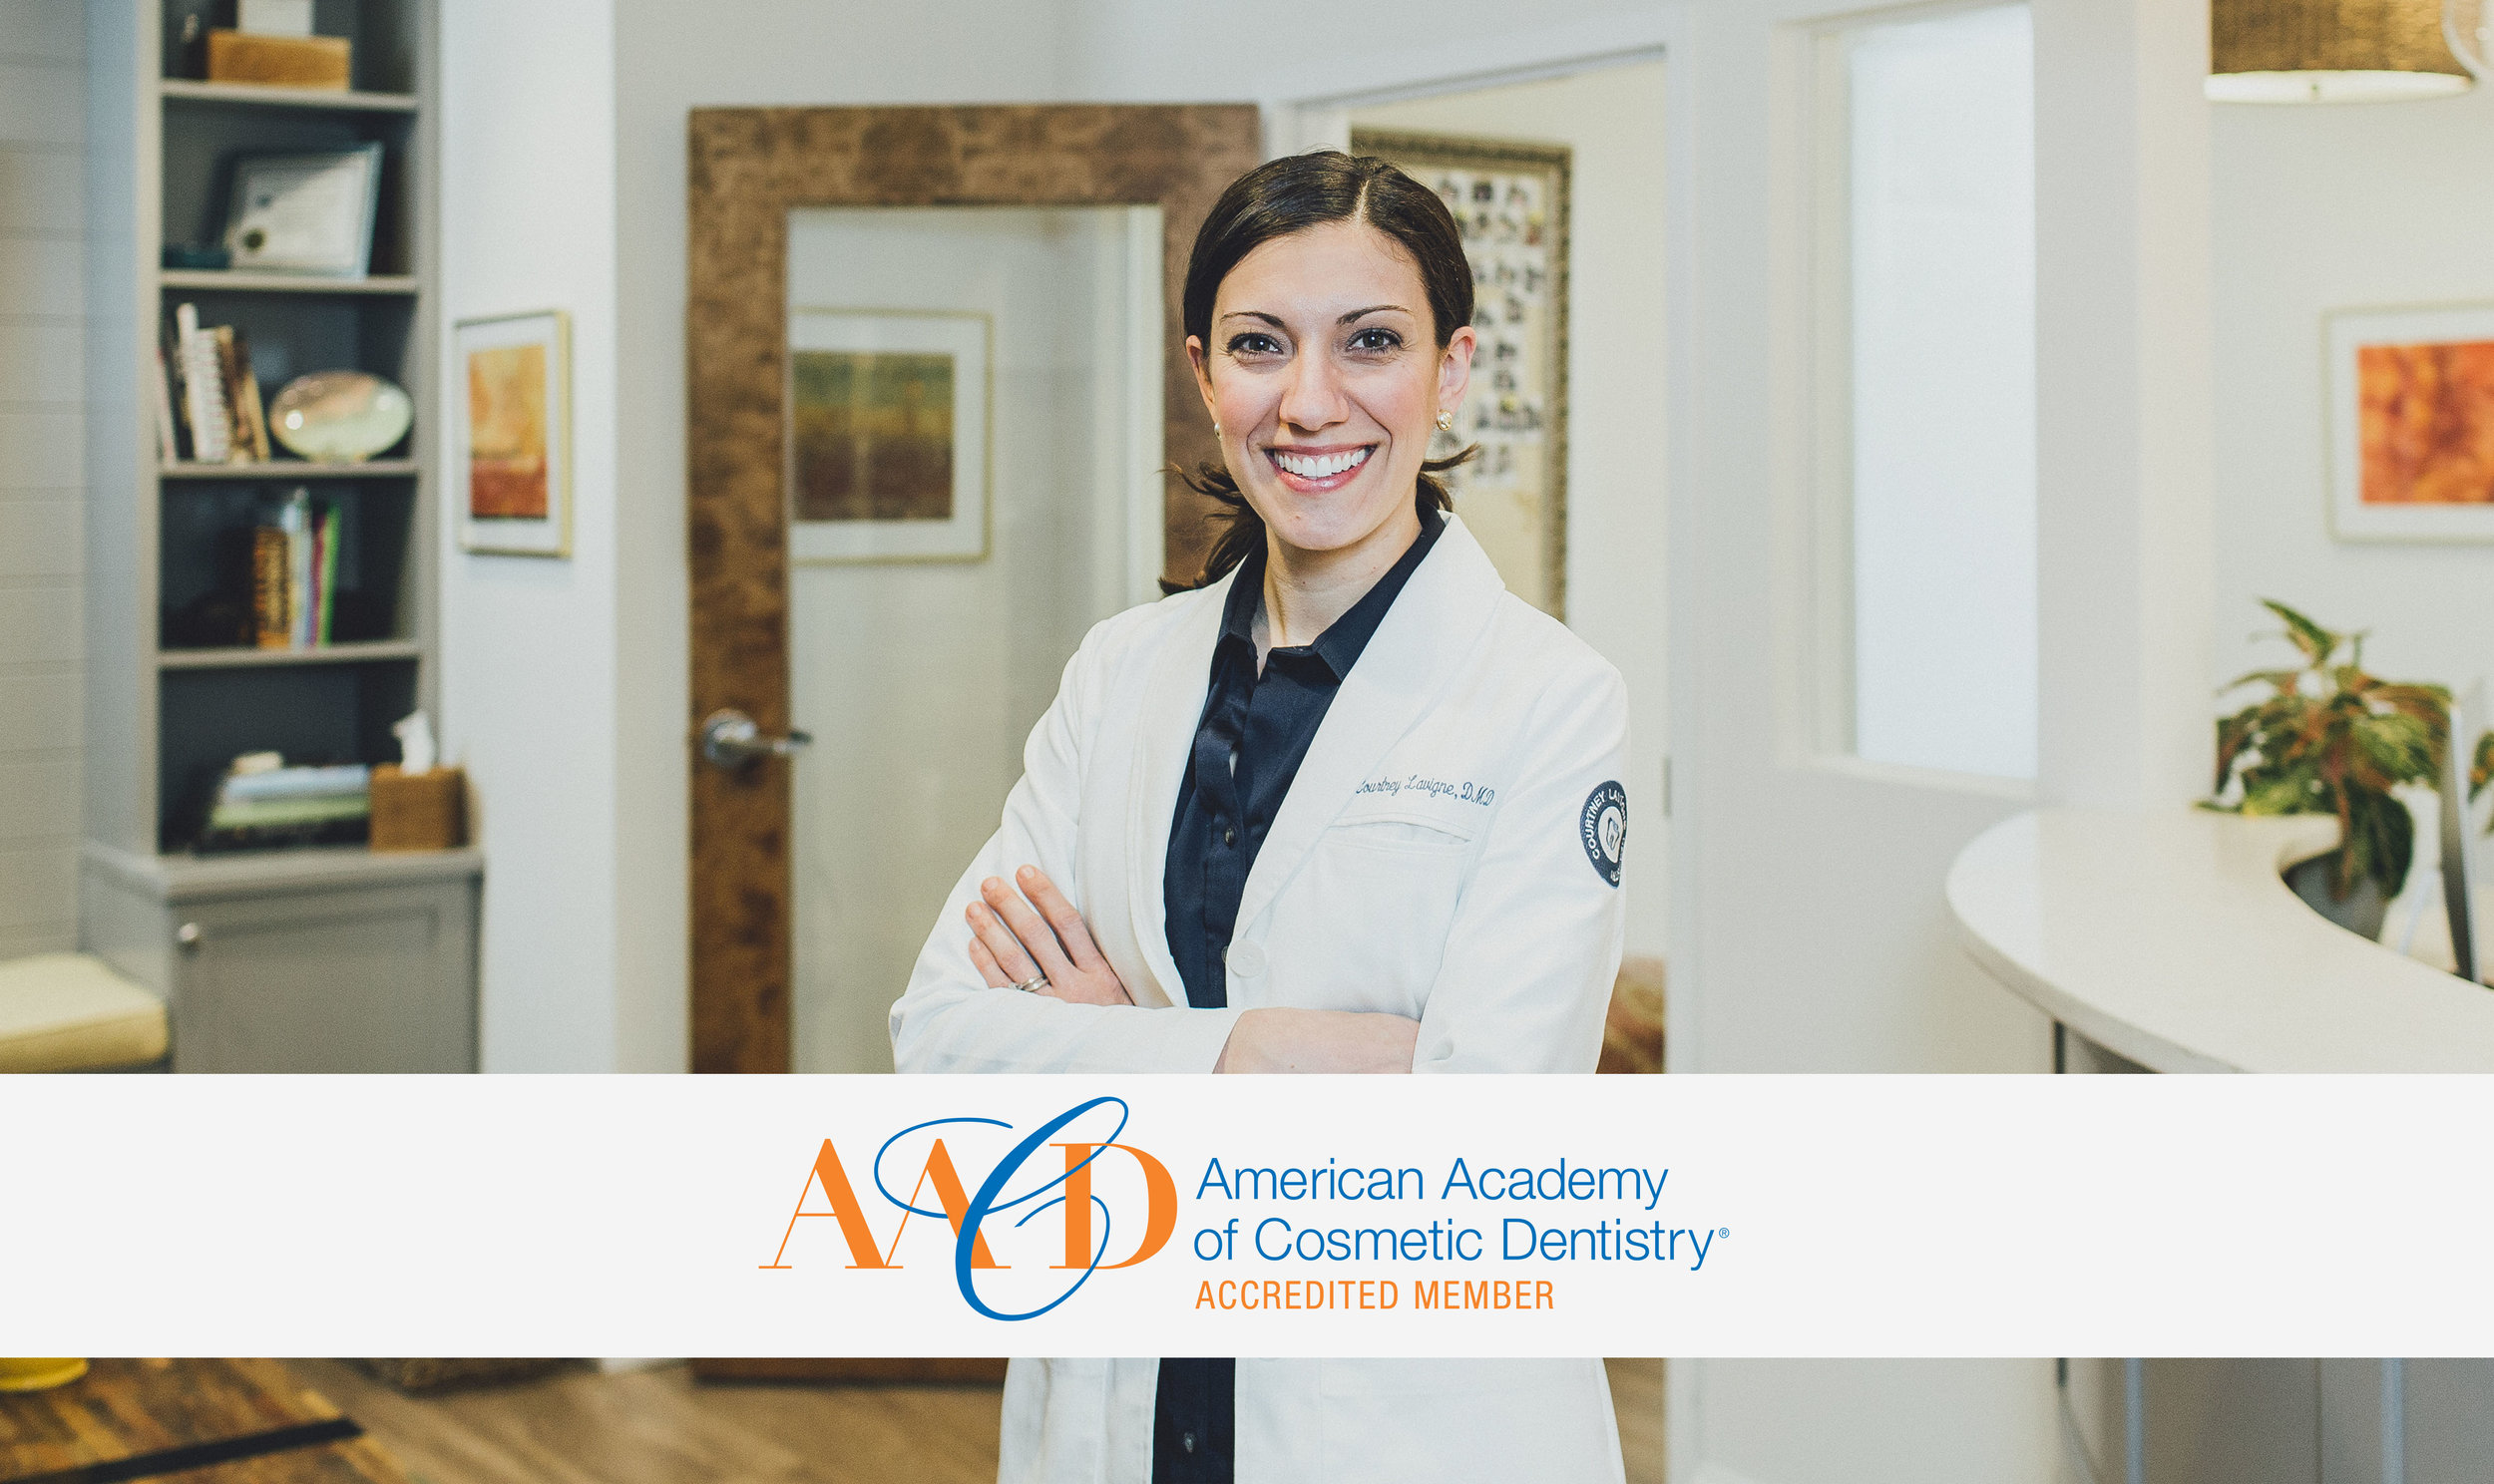 accredited-cosmetic-dentist-Courtney-Lavigne.jpg